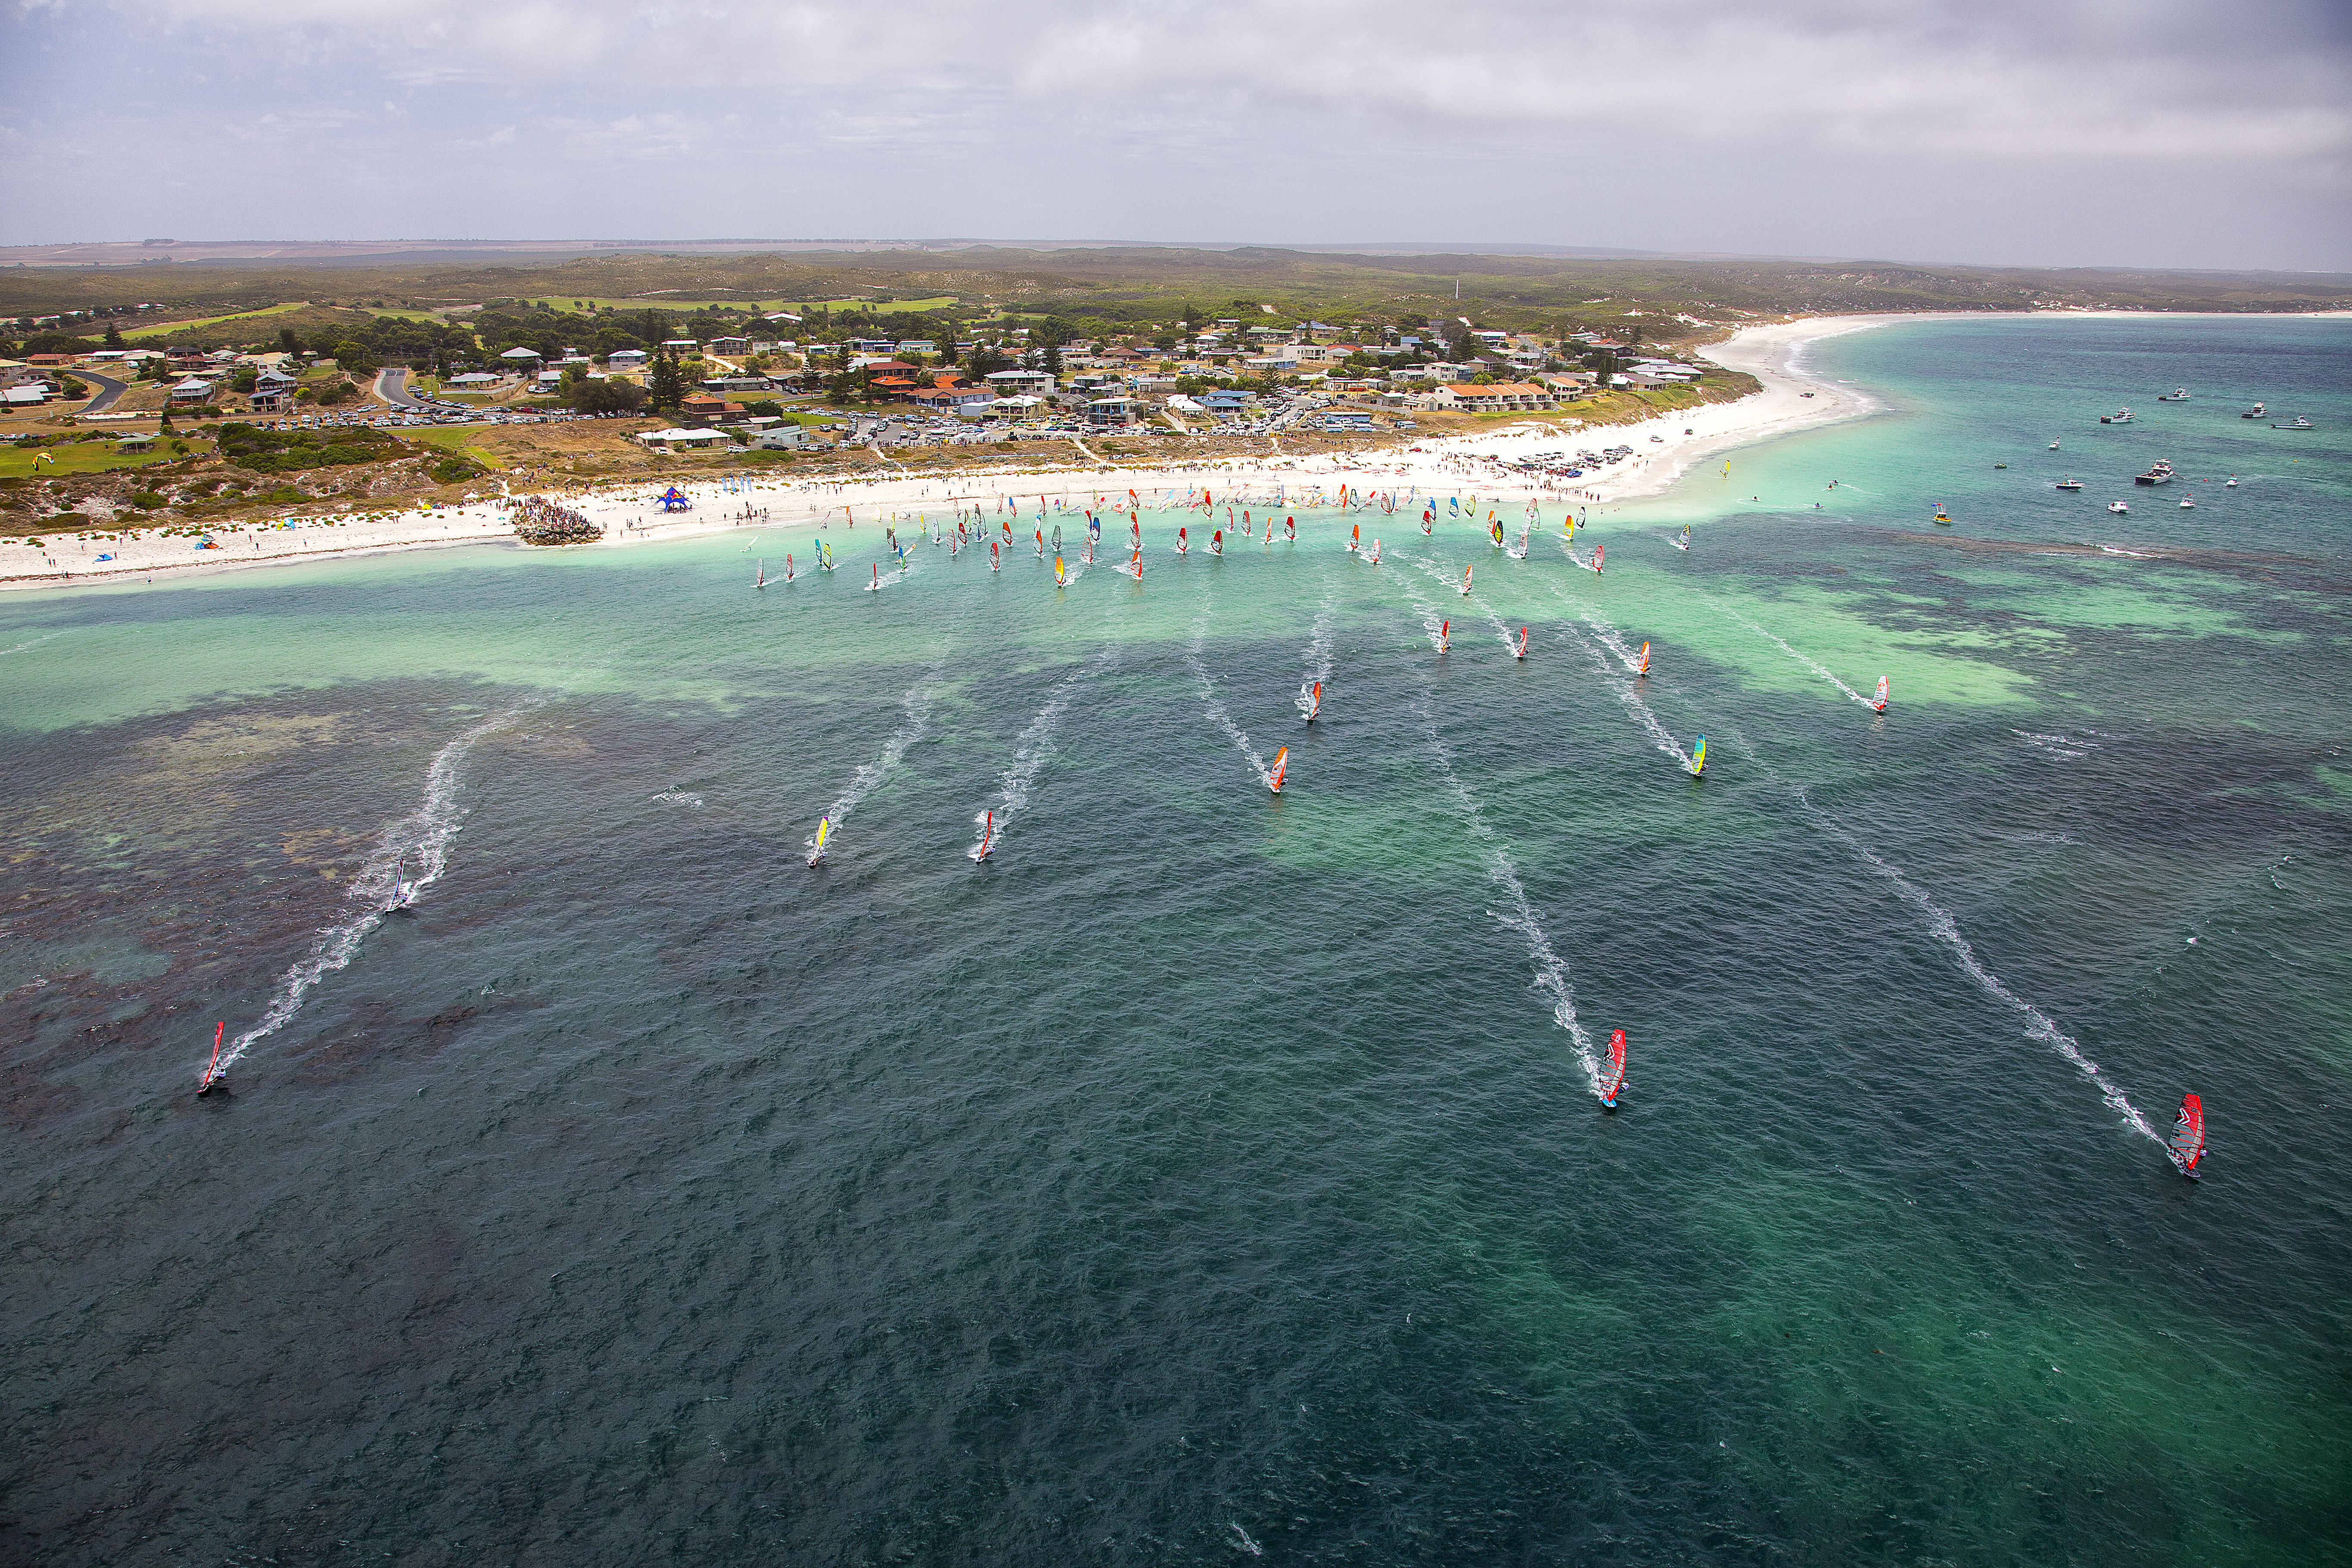 The start of the 2016 Lancelin Ocean Classic, a 25-kilometre marathon for kitesurfers and windsurfers. Photo: John Carter